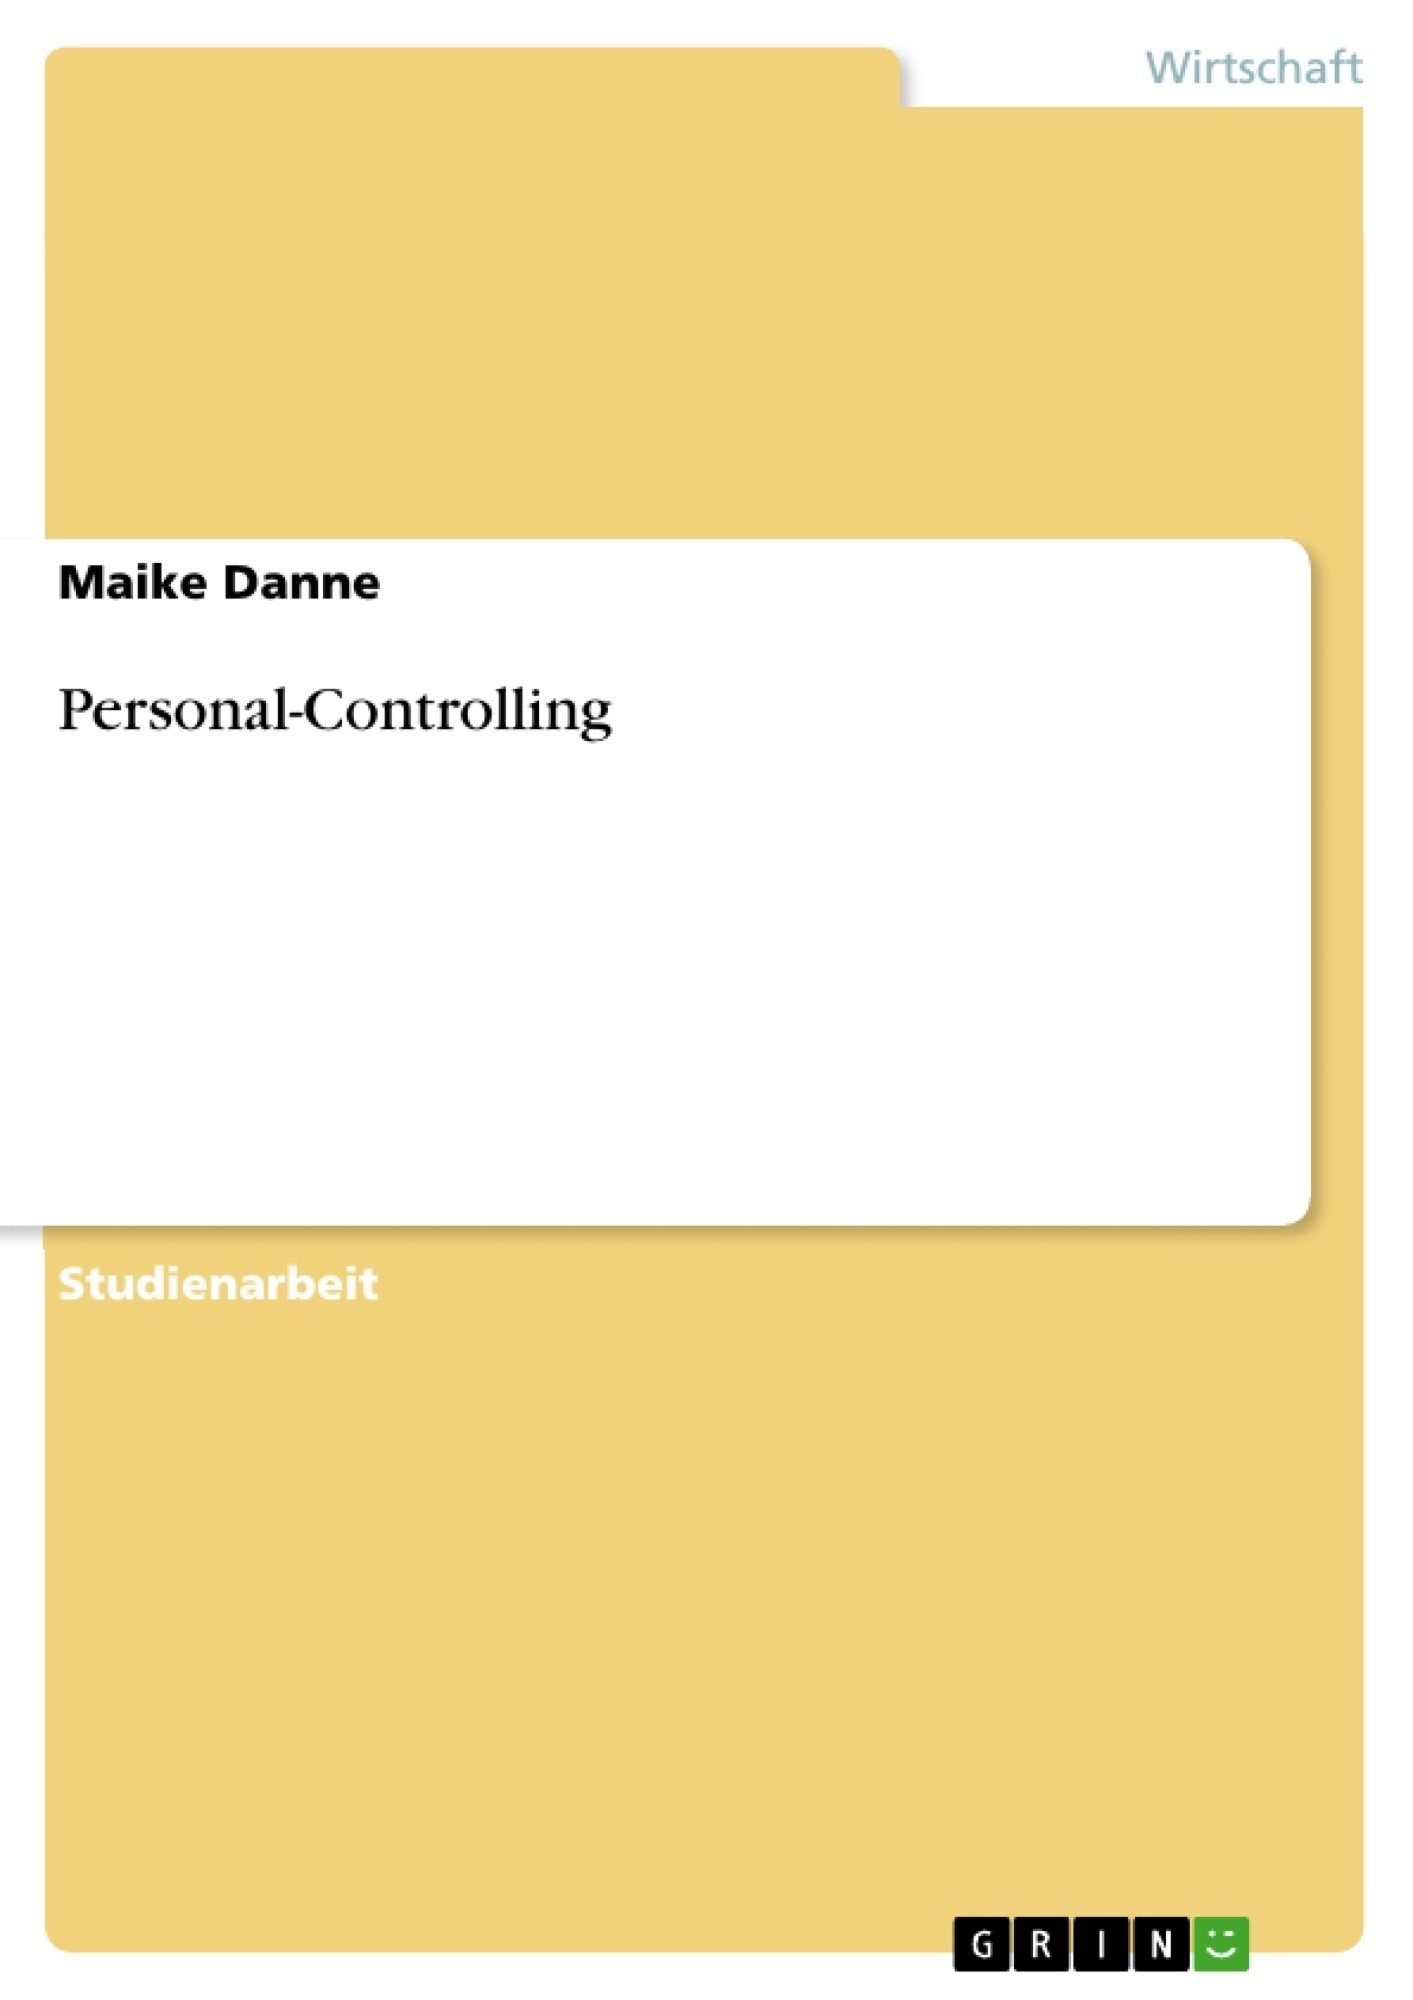 Titel: Personal-Controlling